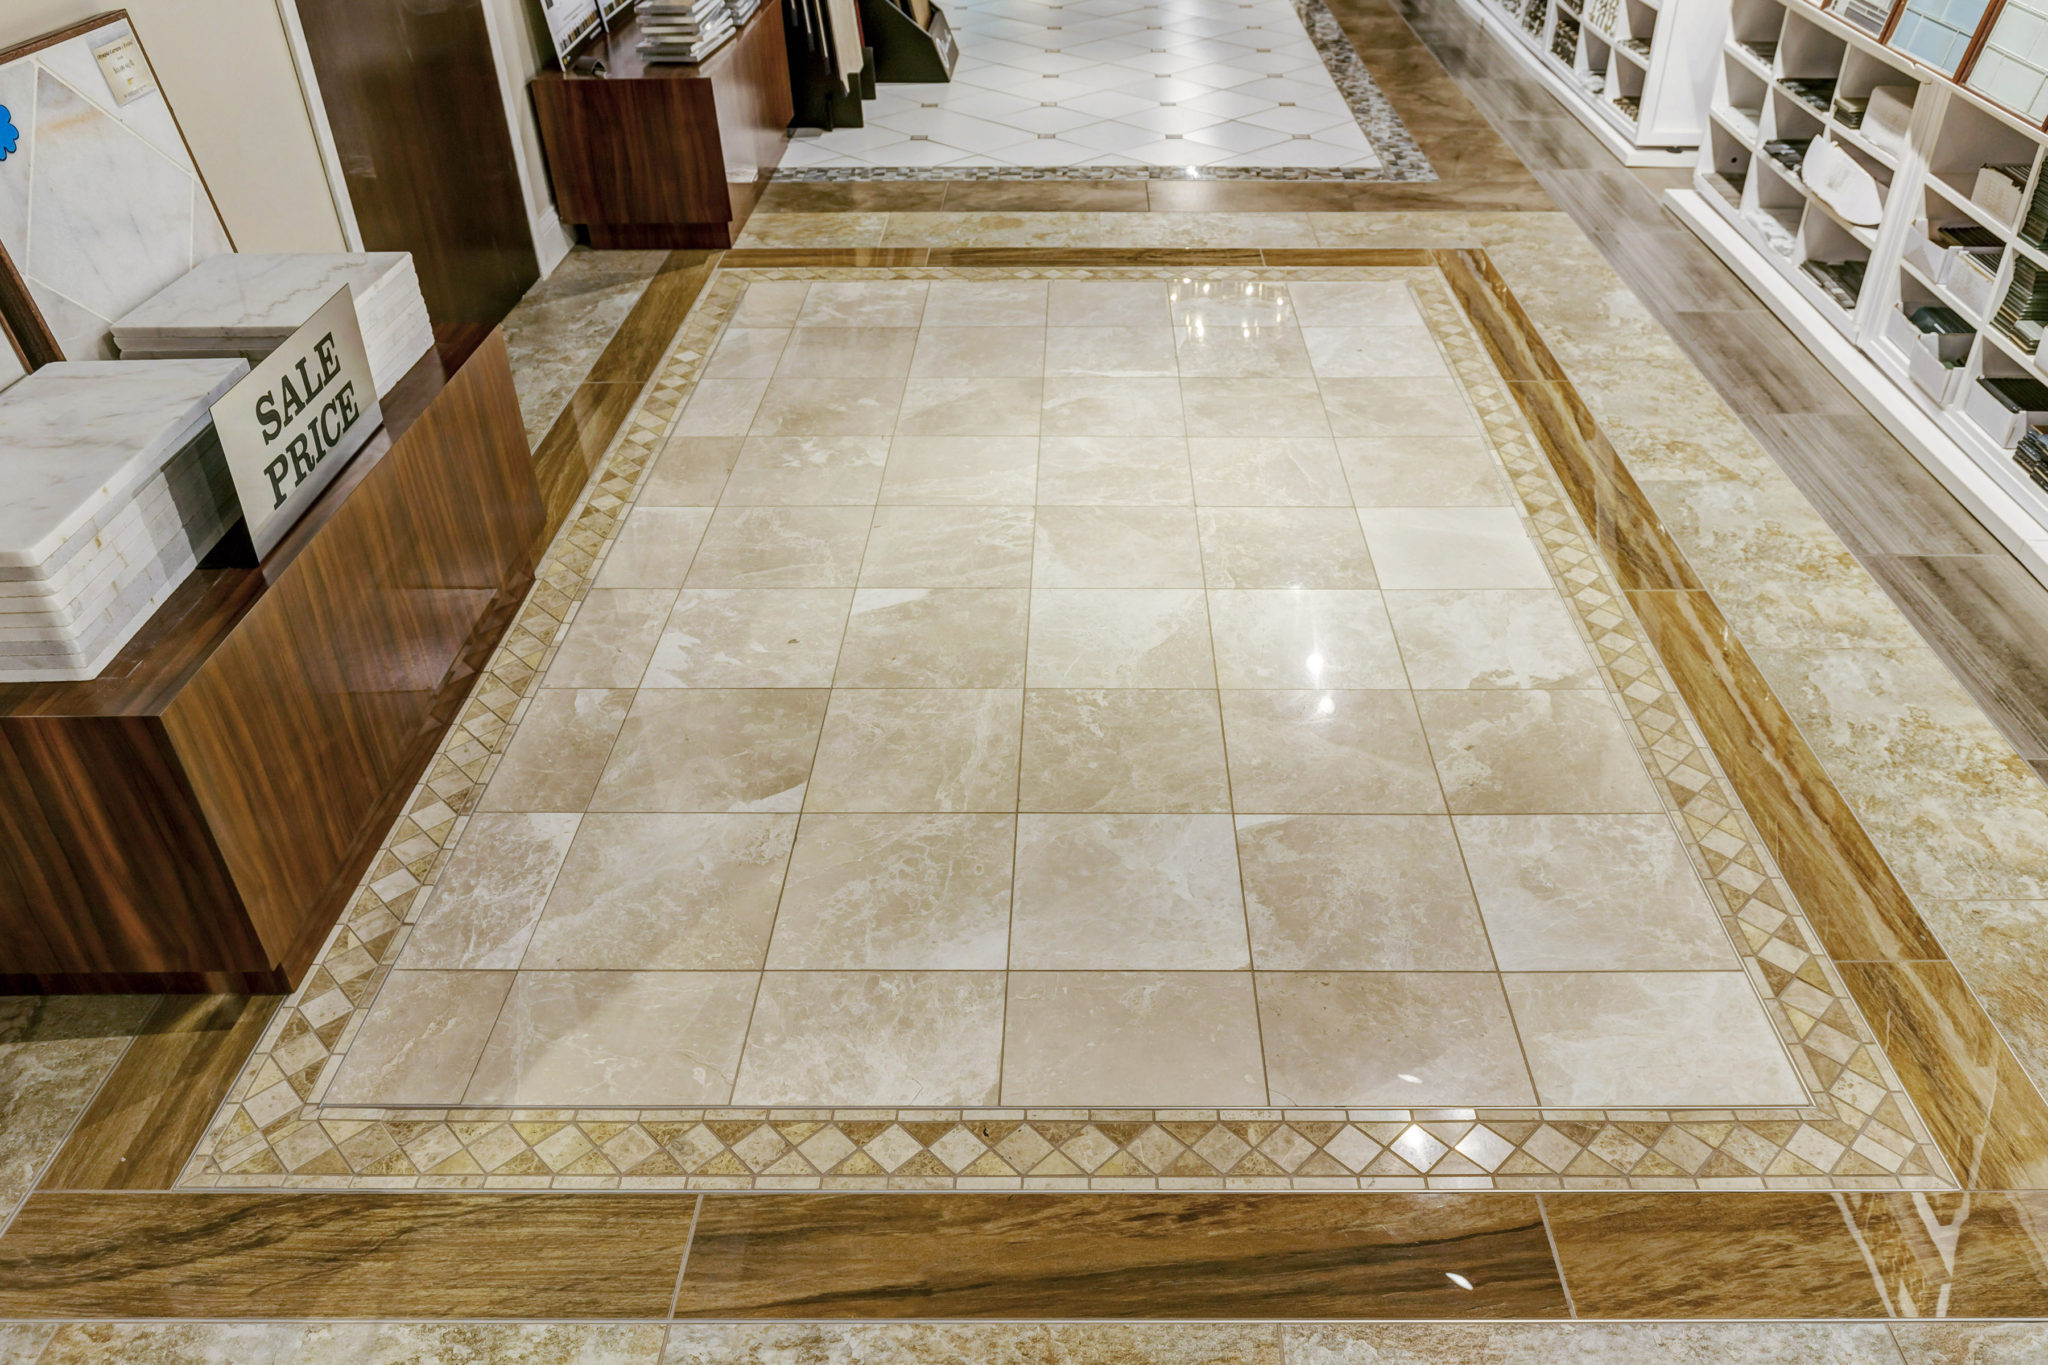 Ceramic Kitchen Floor Design Ideas ~ Ceramic tile st charles come see many